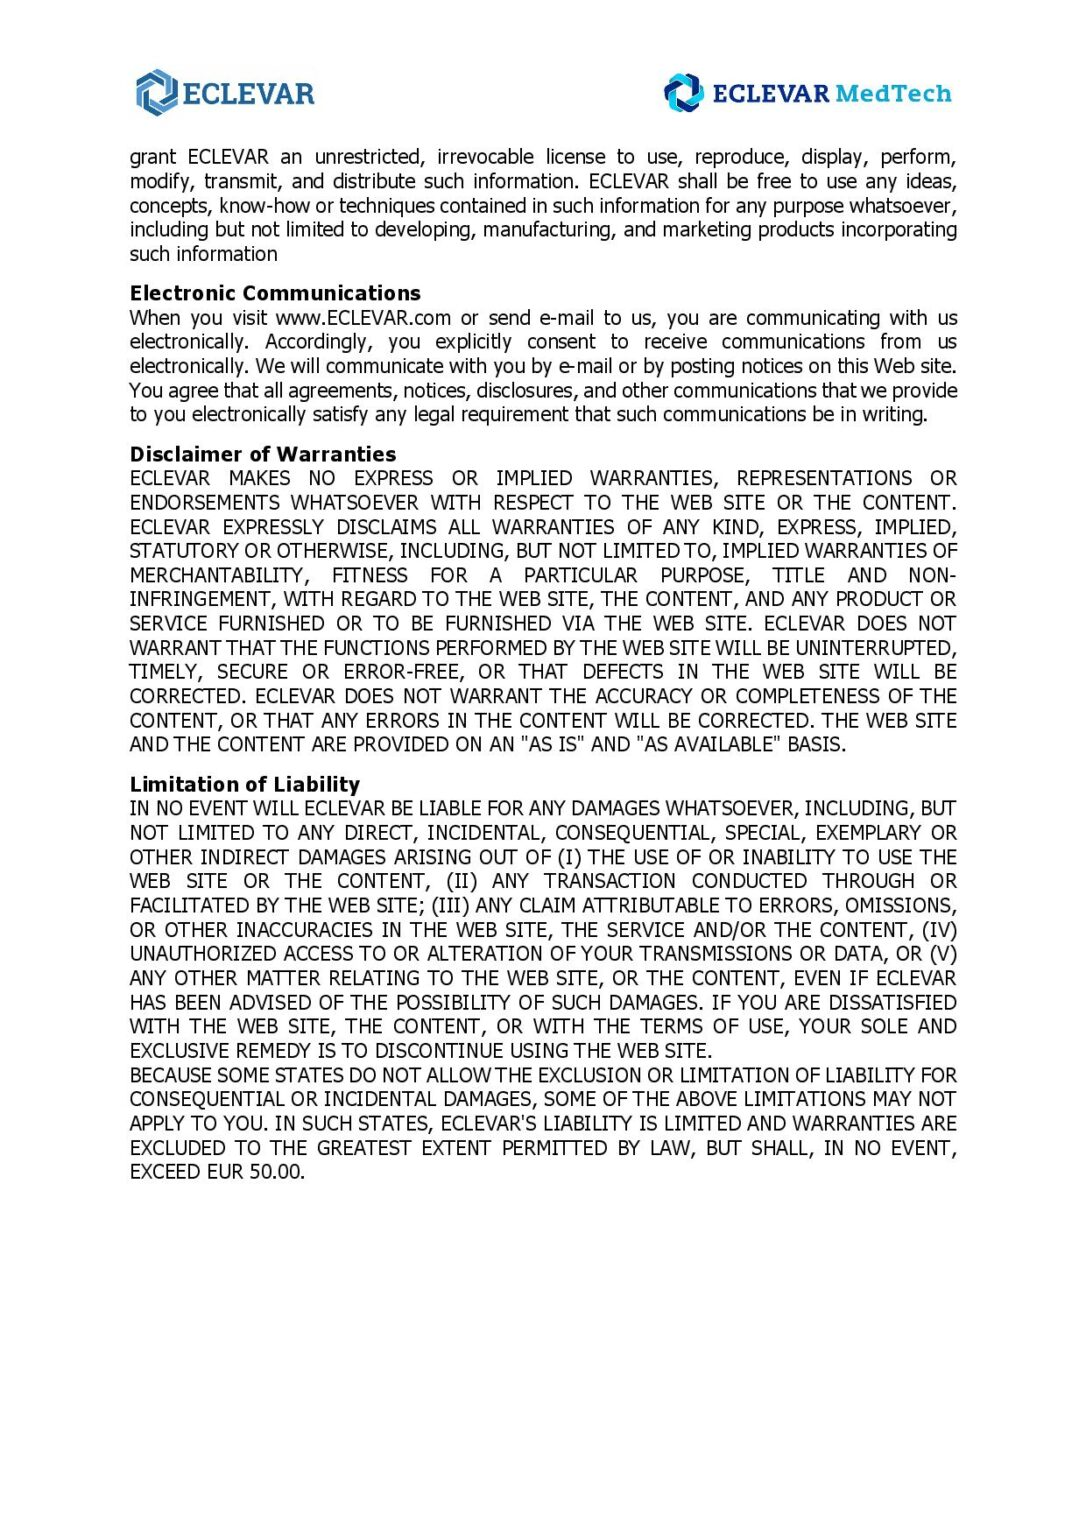 ECLEVAR PRIVACY 19 08 2020 _MedTech-page-008